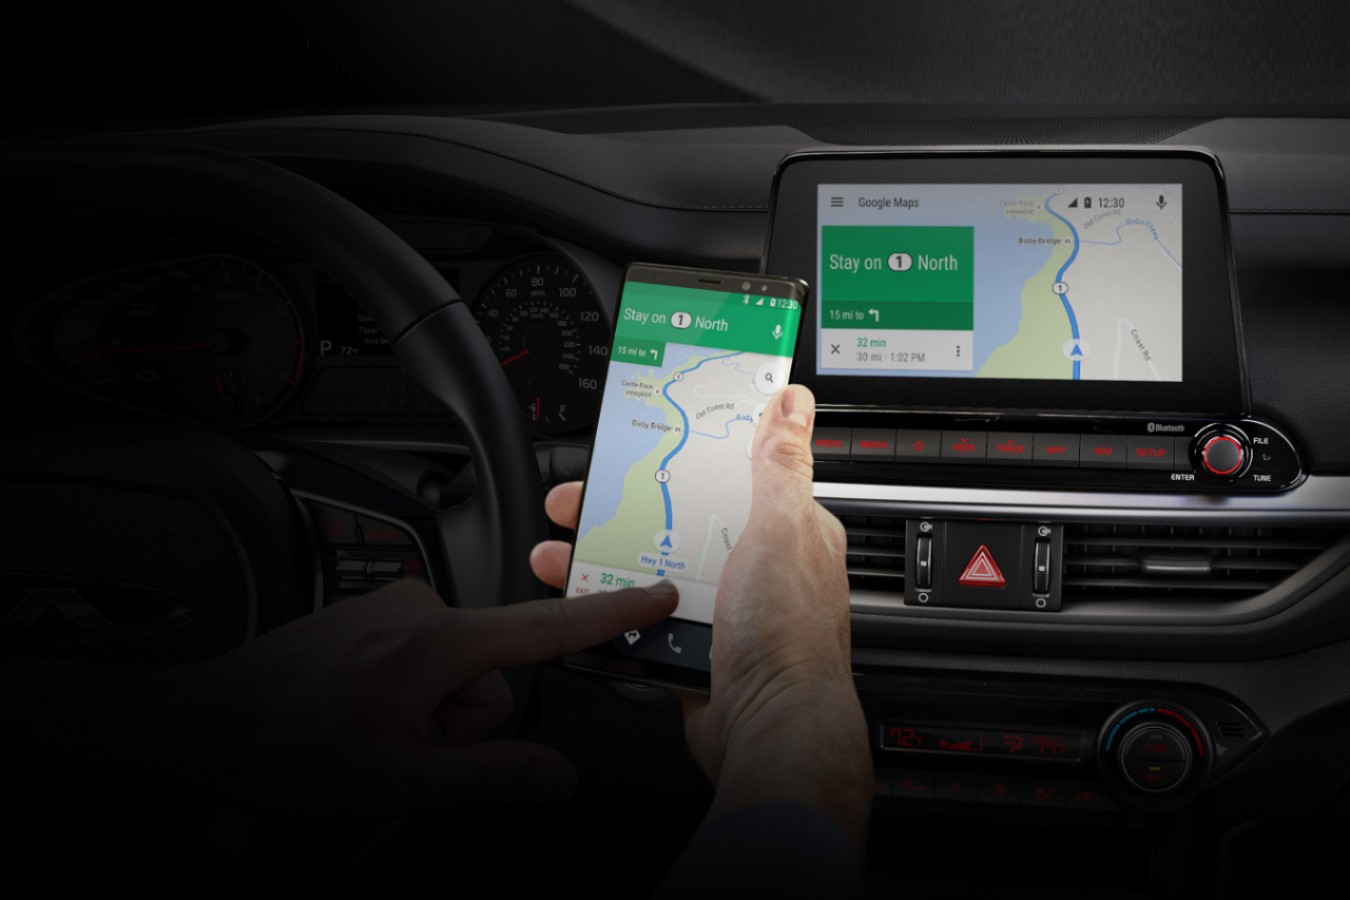 Android Auto in the 2020 Forte